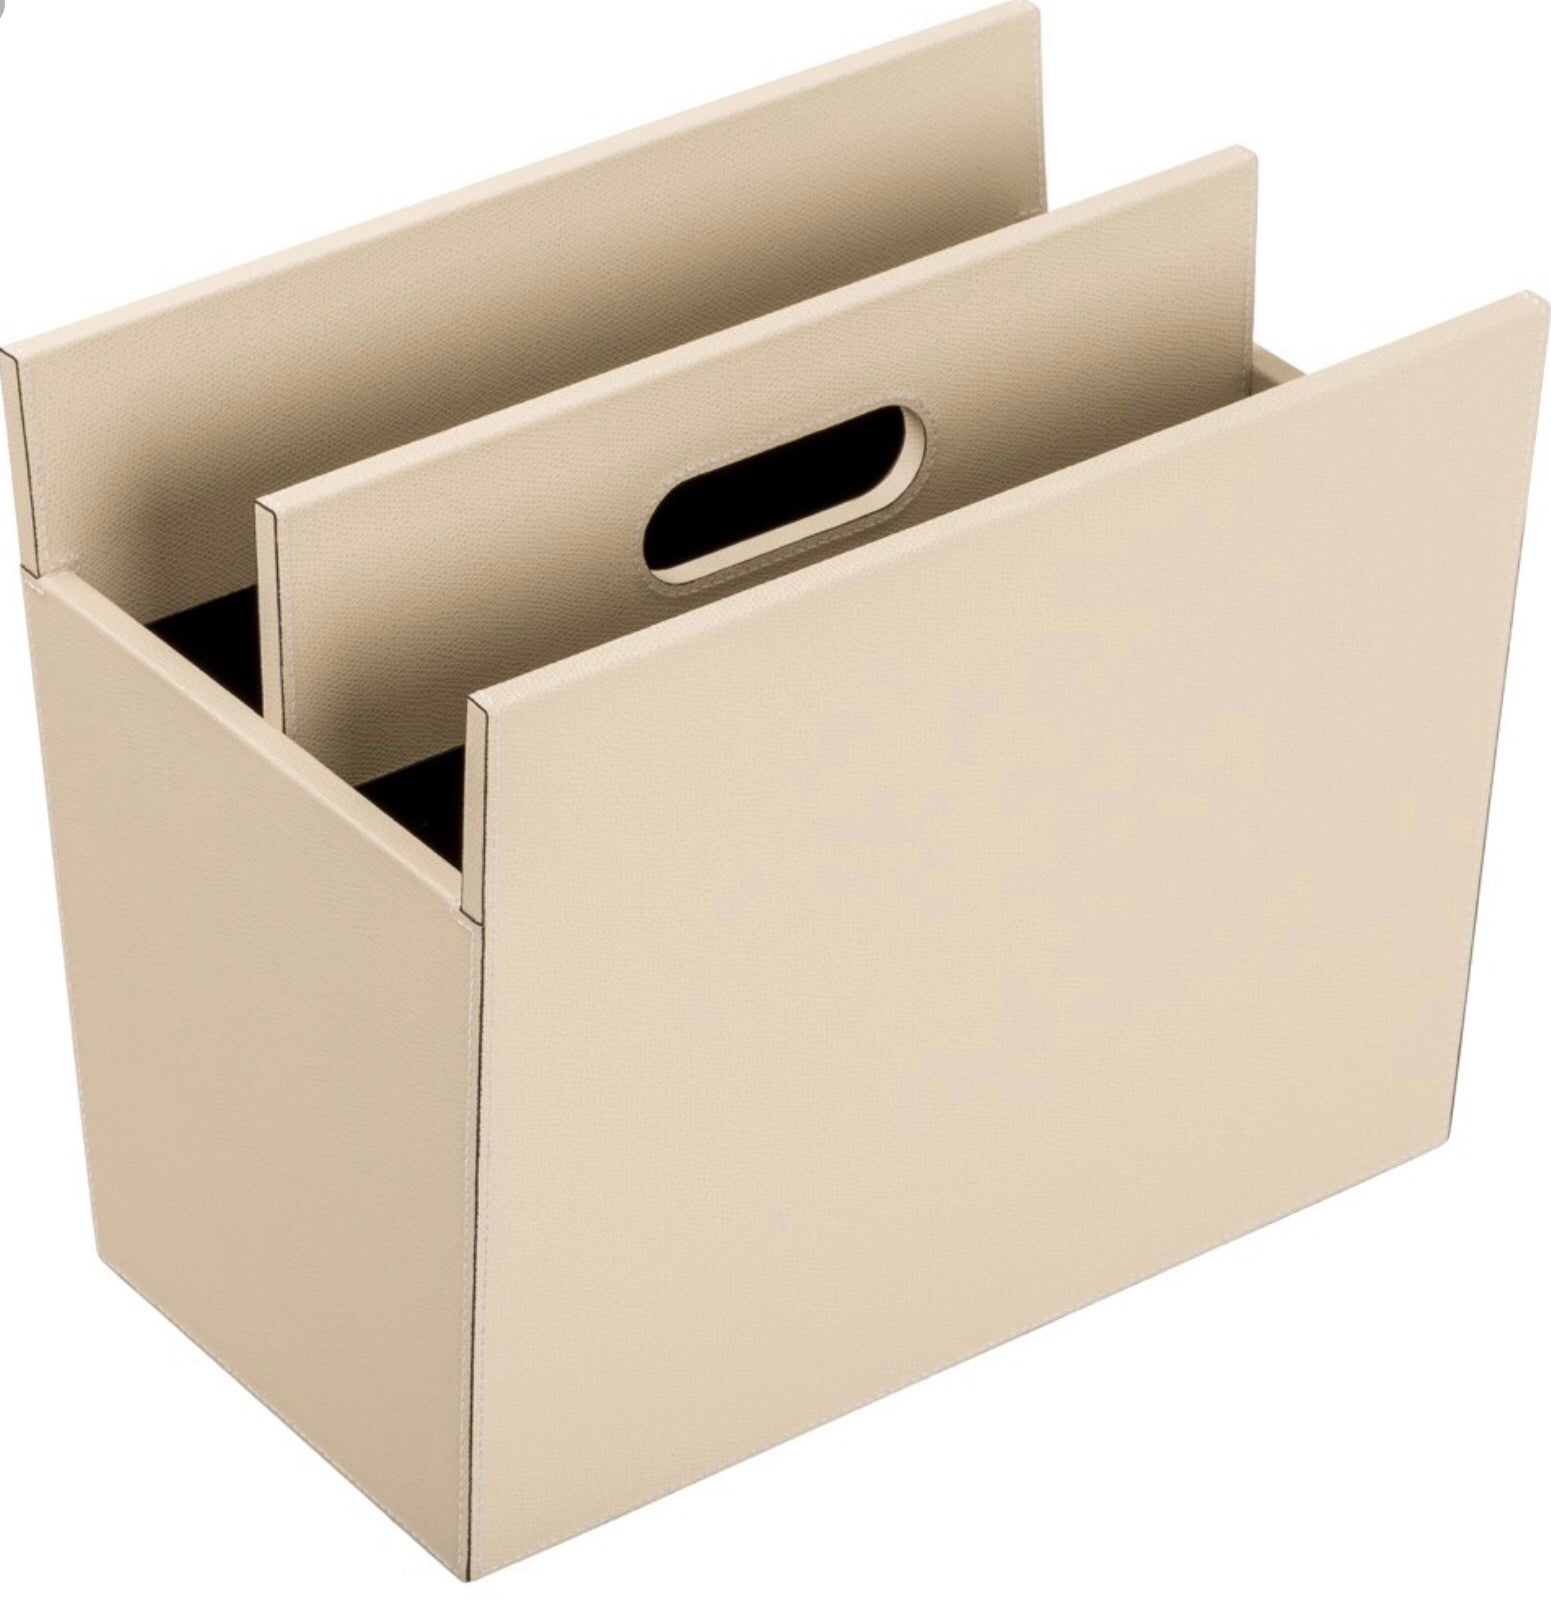 GIOBAGNARA I DAILY MAGAZINE HOLDER I IVORY